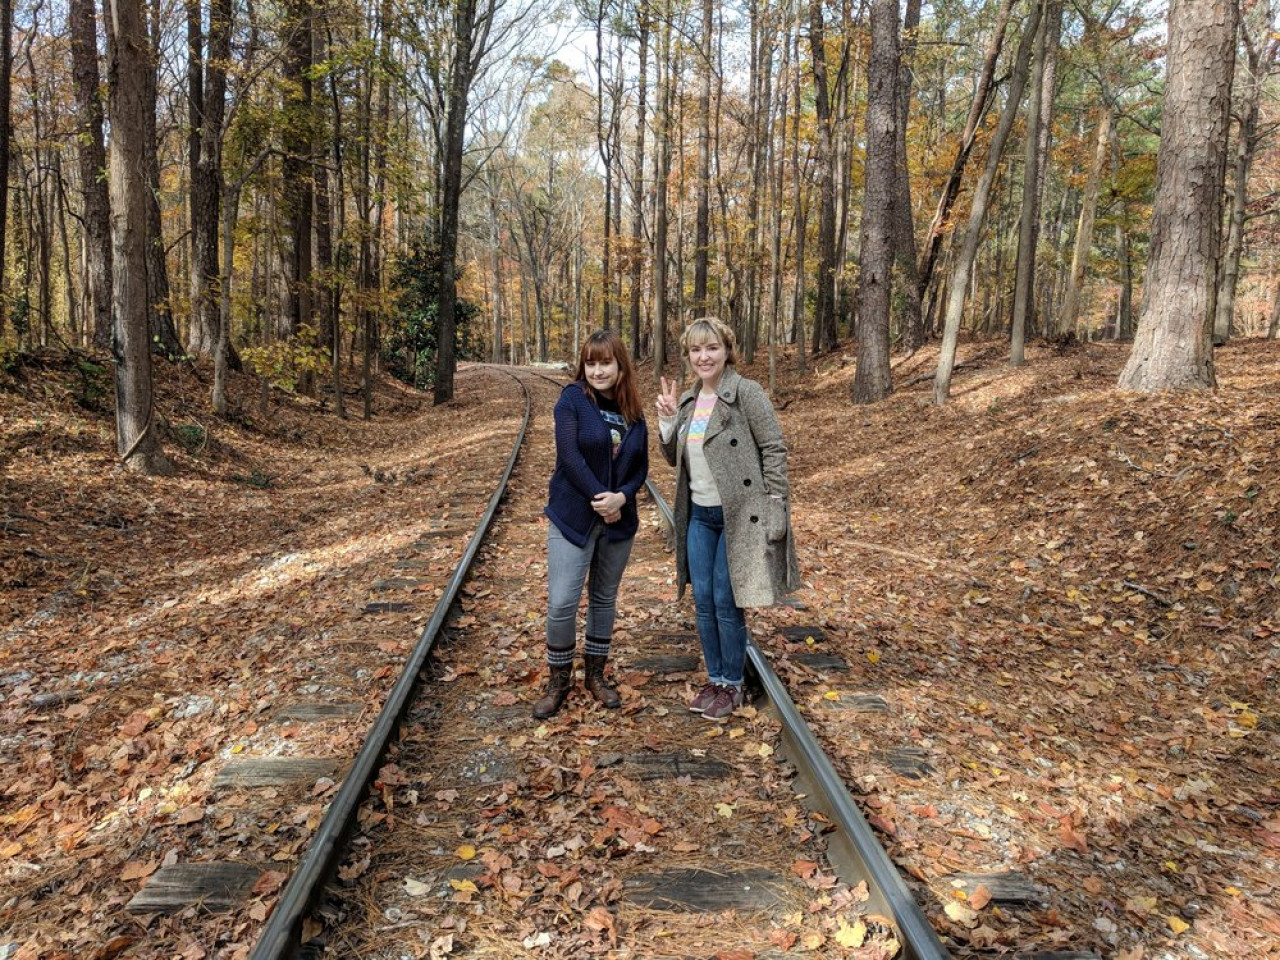 Ash and Tori at Stone Mountain Park. Early in Season 1 the boys are seen walking along these tracks with Eleven.